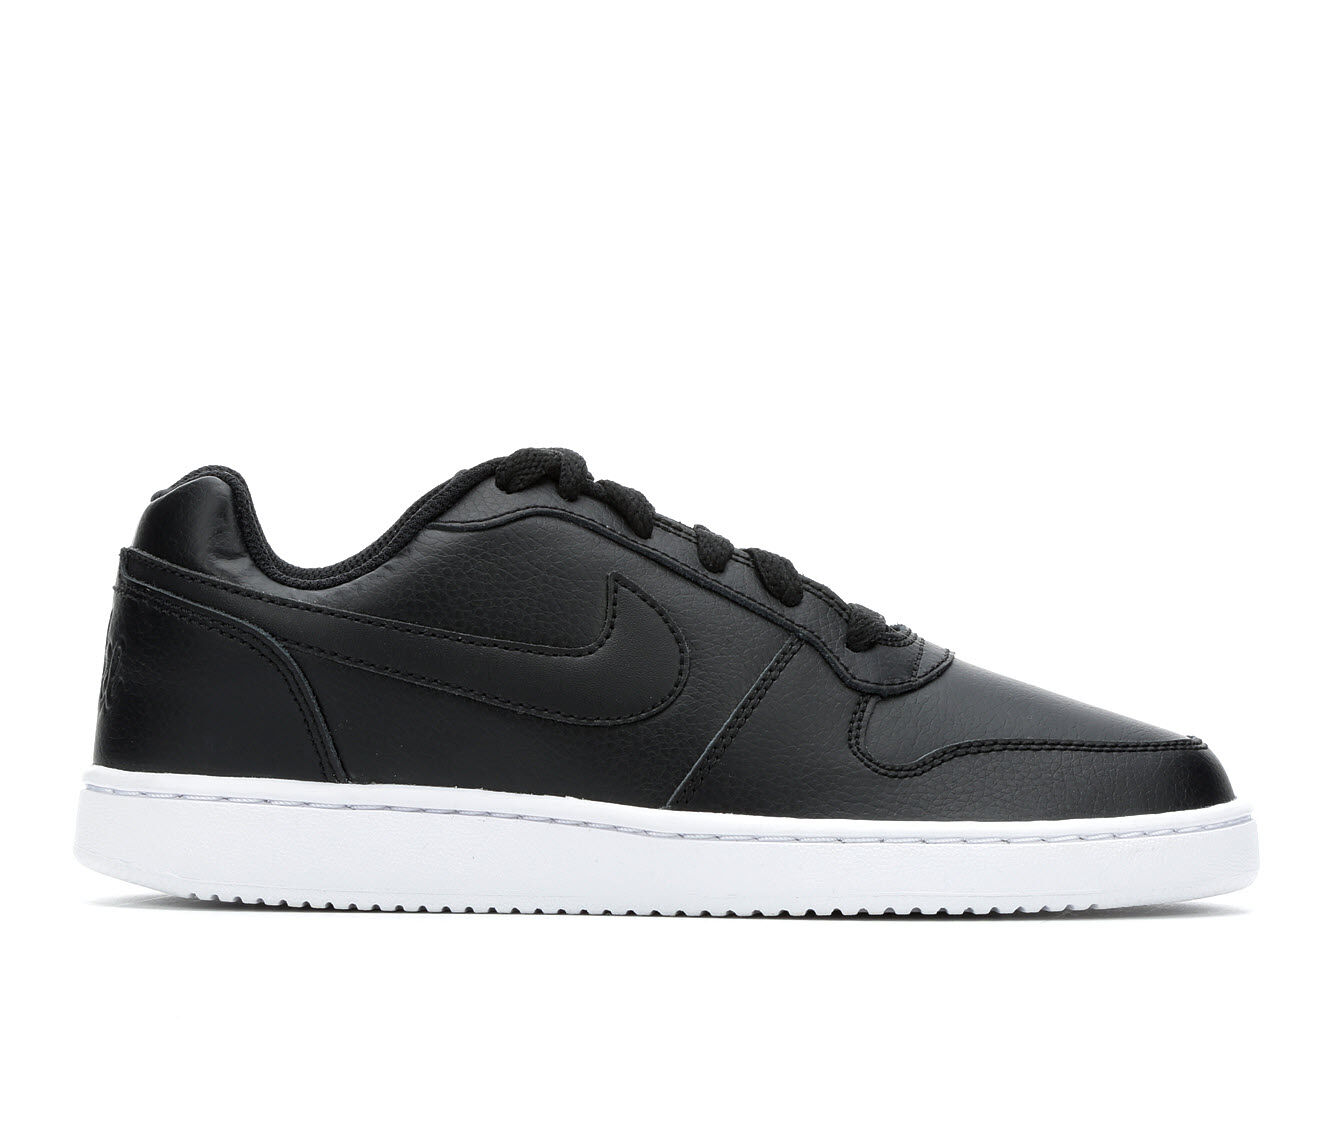 Women's Nike Ebernon Low Basketball Shoes Black/White